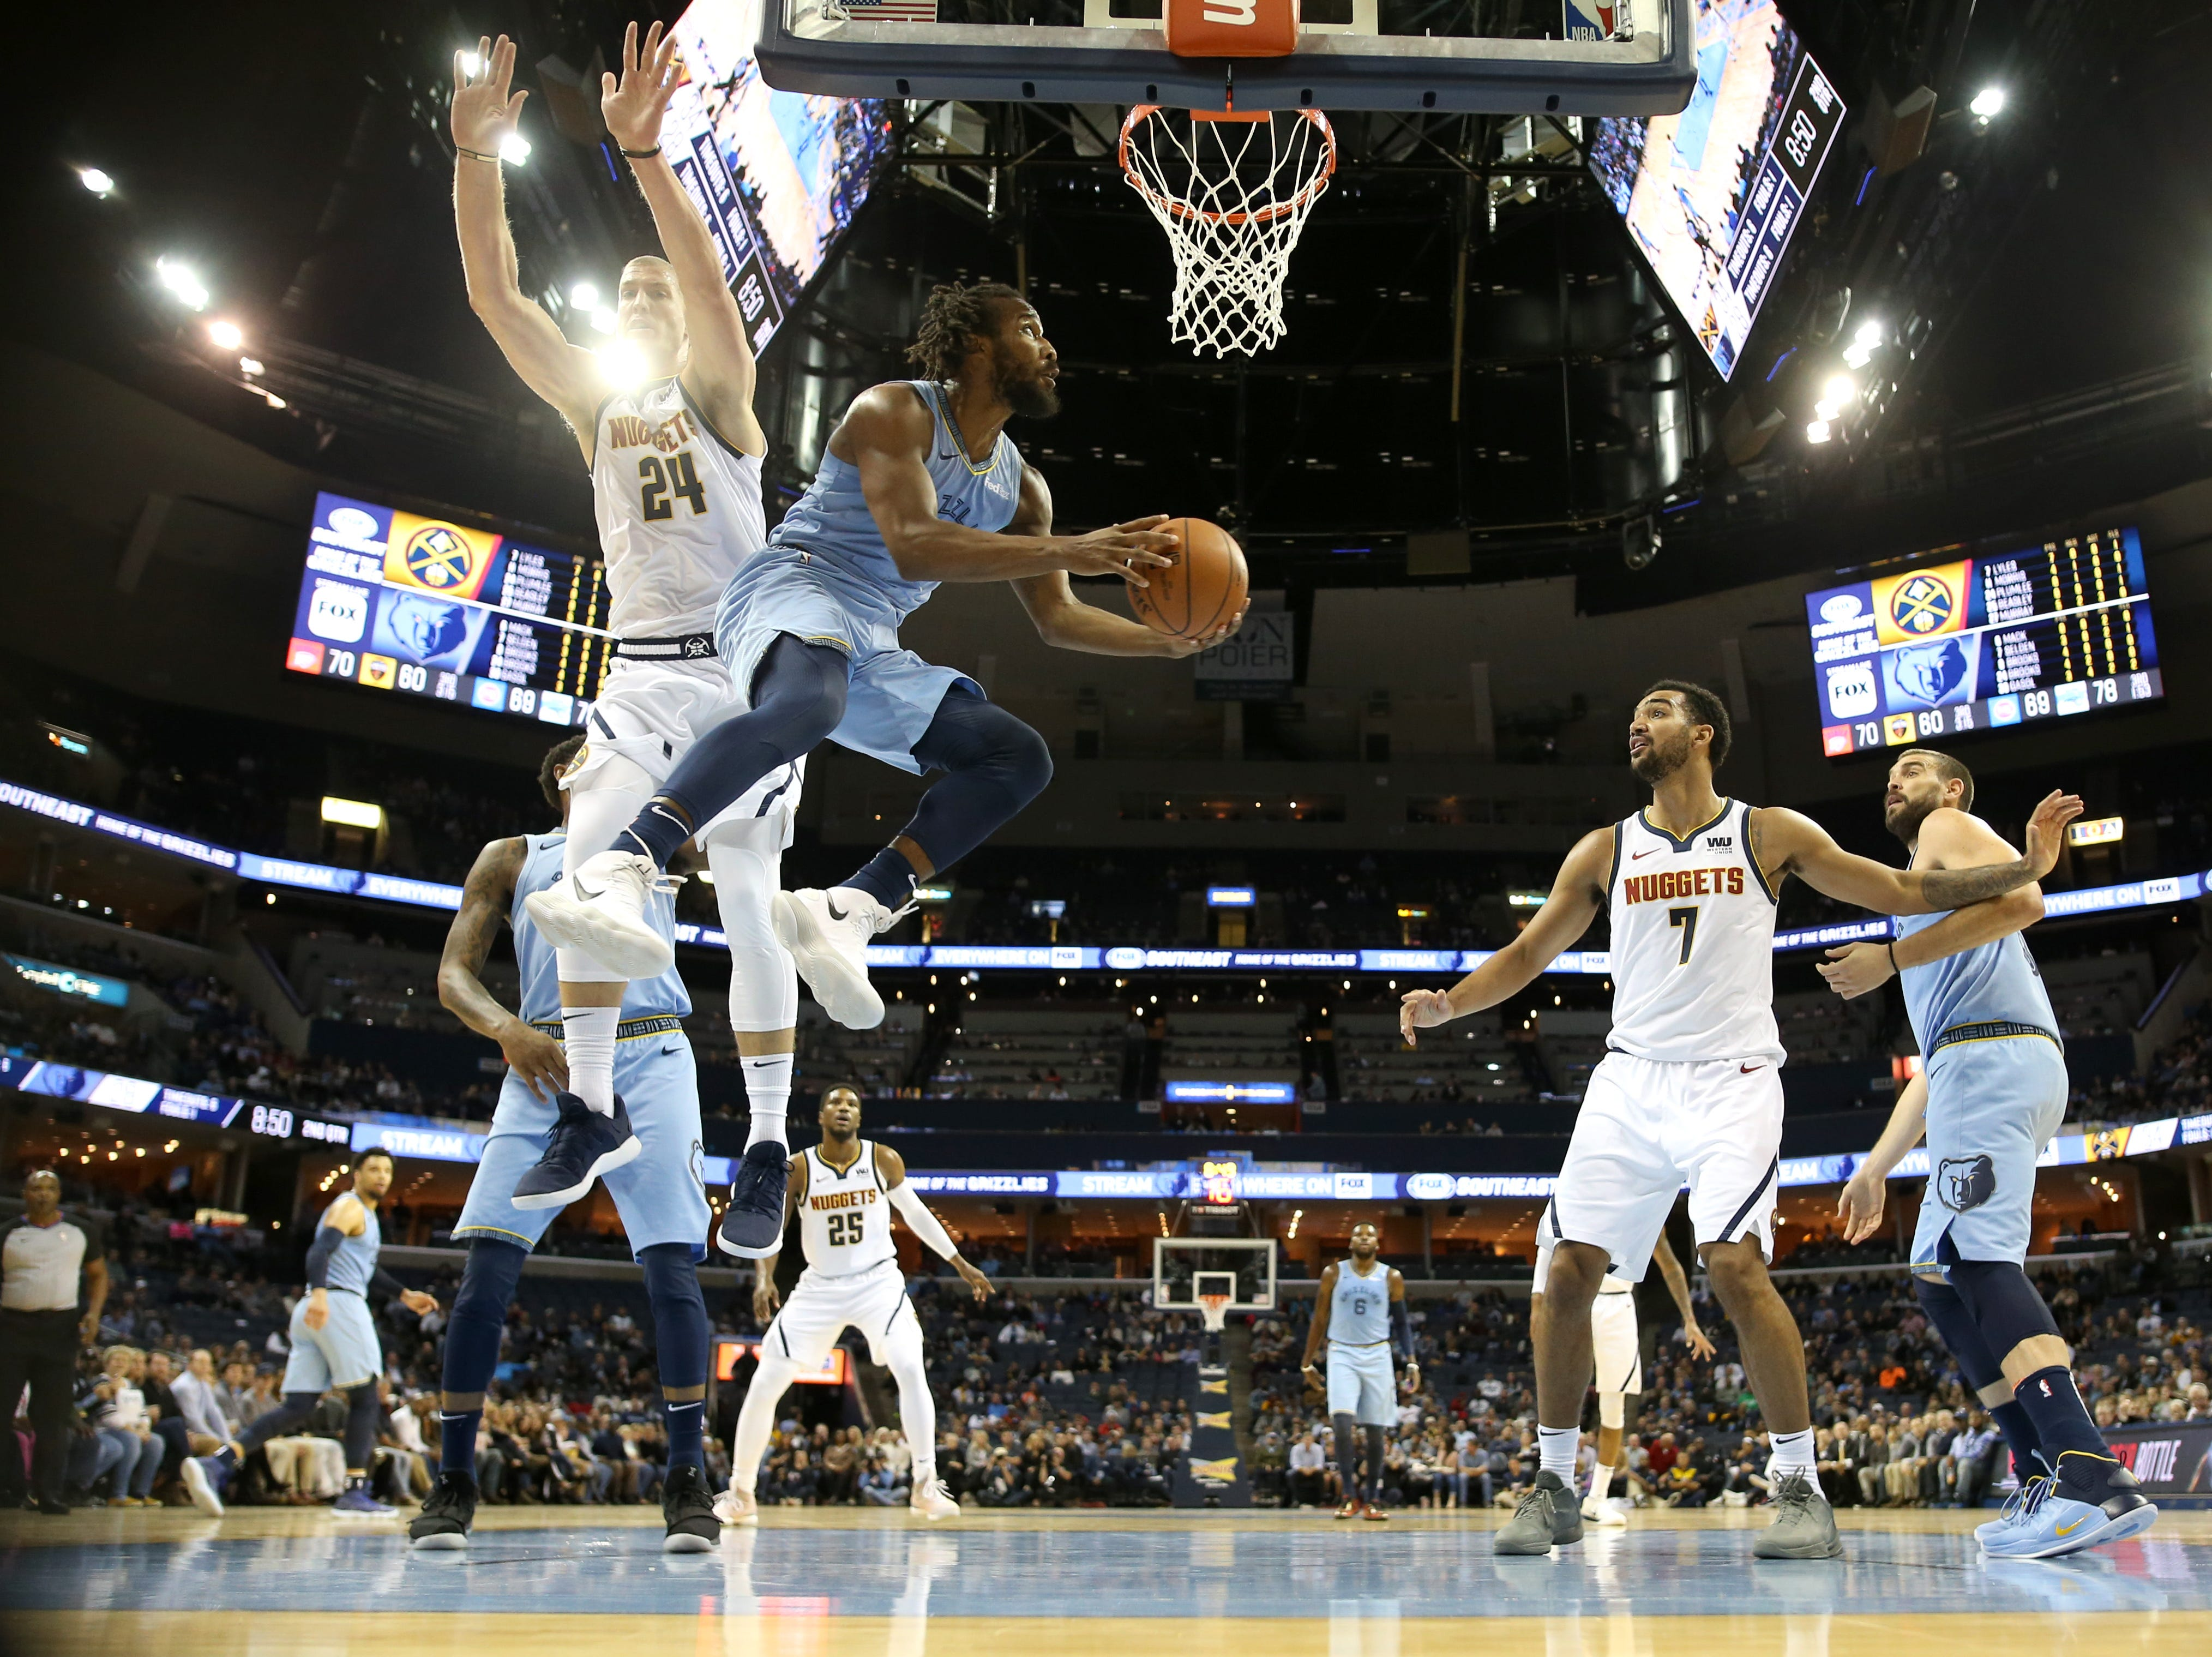 Memphis Grizzlies guard Wayne Selden is fouled while trying to manuver around Denver Nuggets forward Mason Plumlee for a layup during their game at the FedExForum on Wednesday, November 7, 2018.